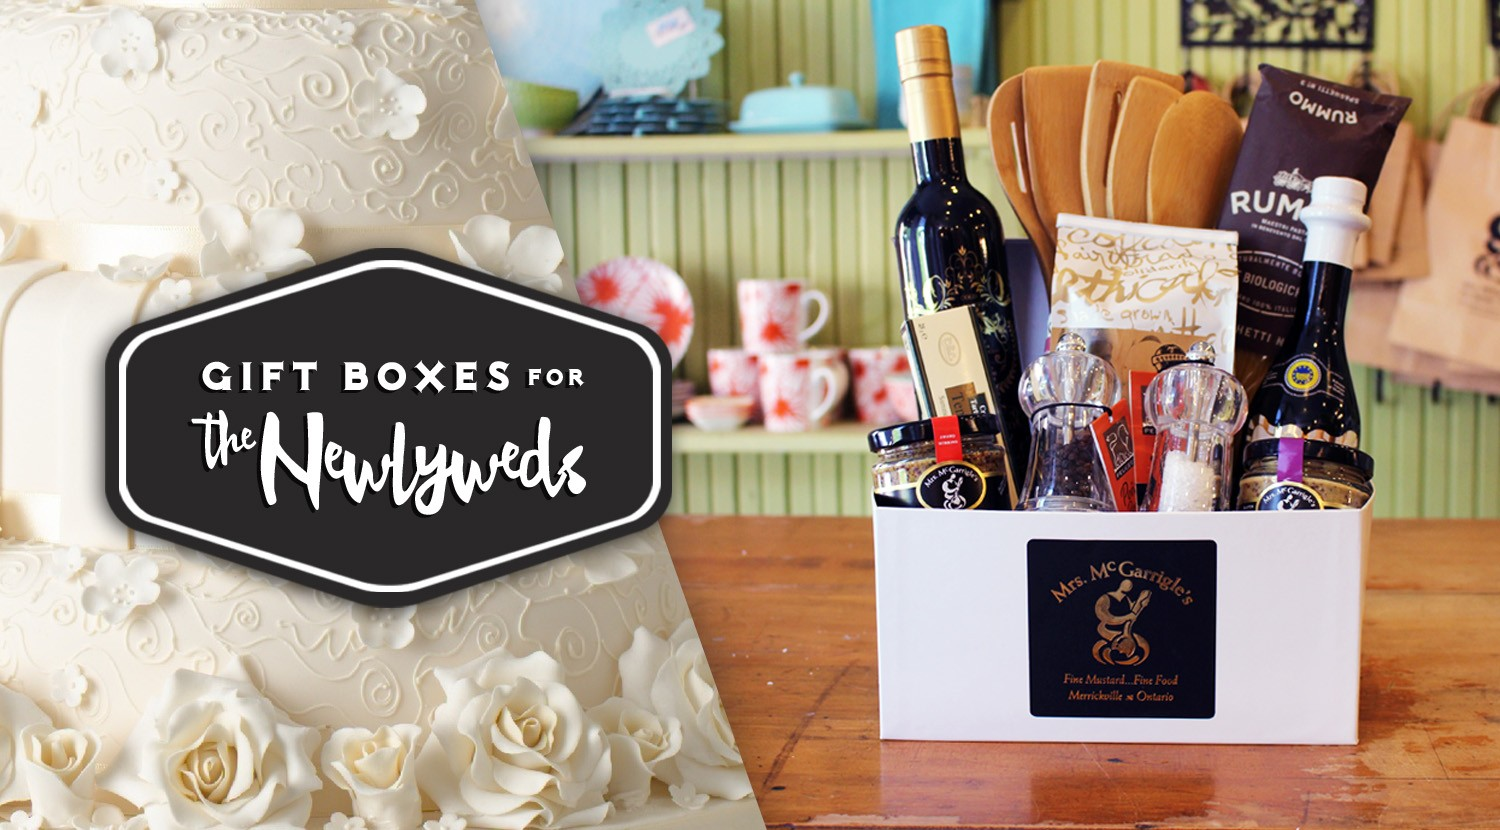 Mrs. McGarrigle's Gift Box for the Newlyweds